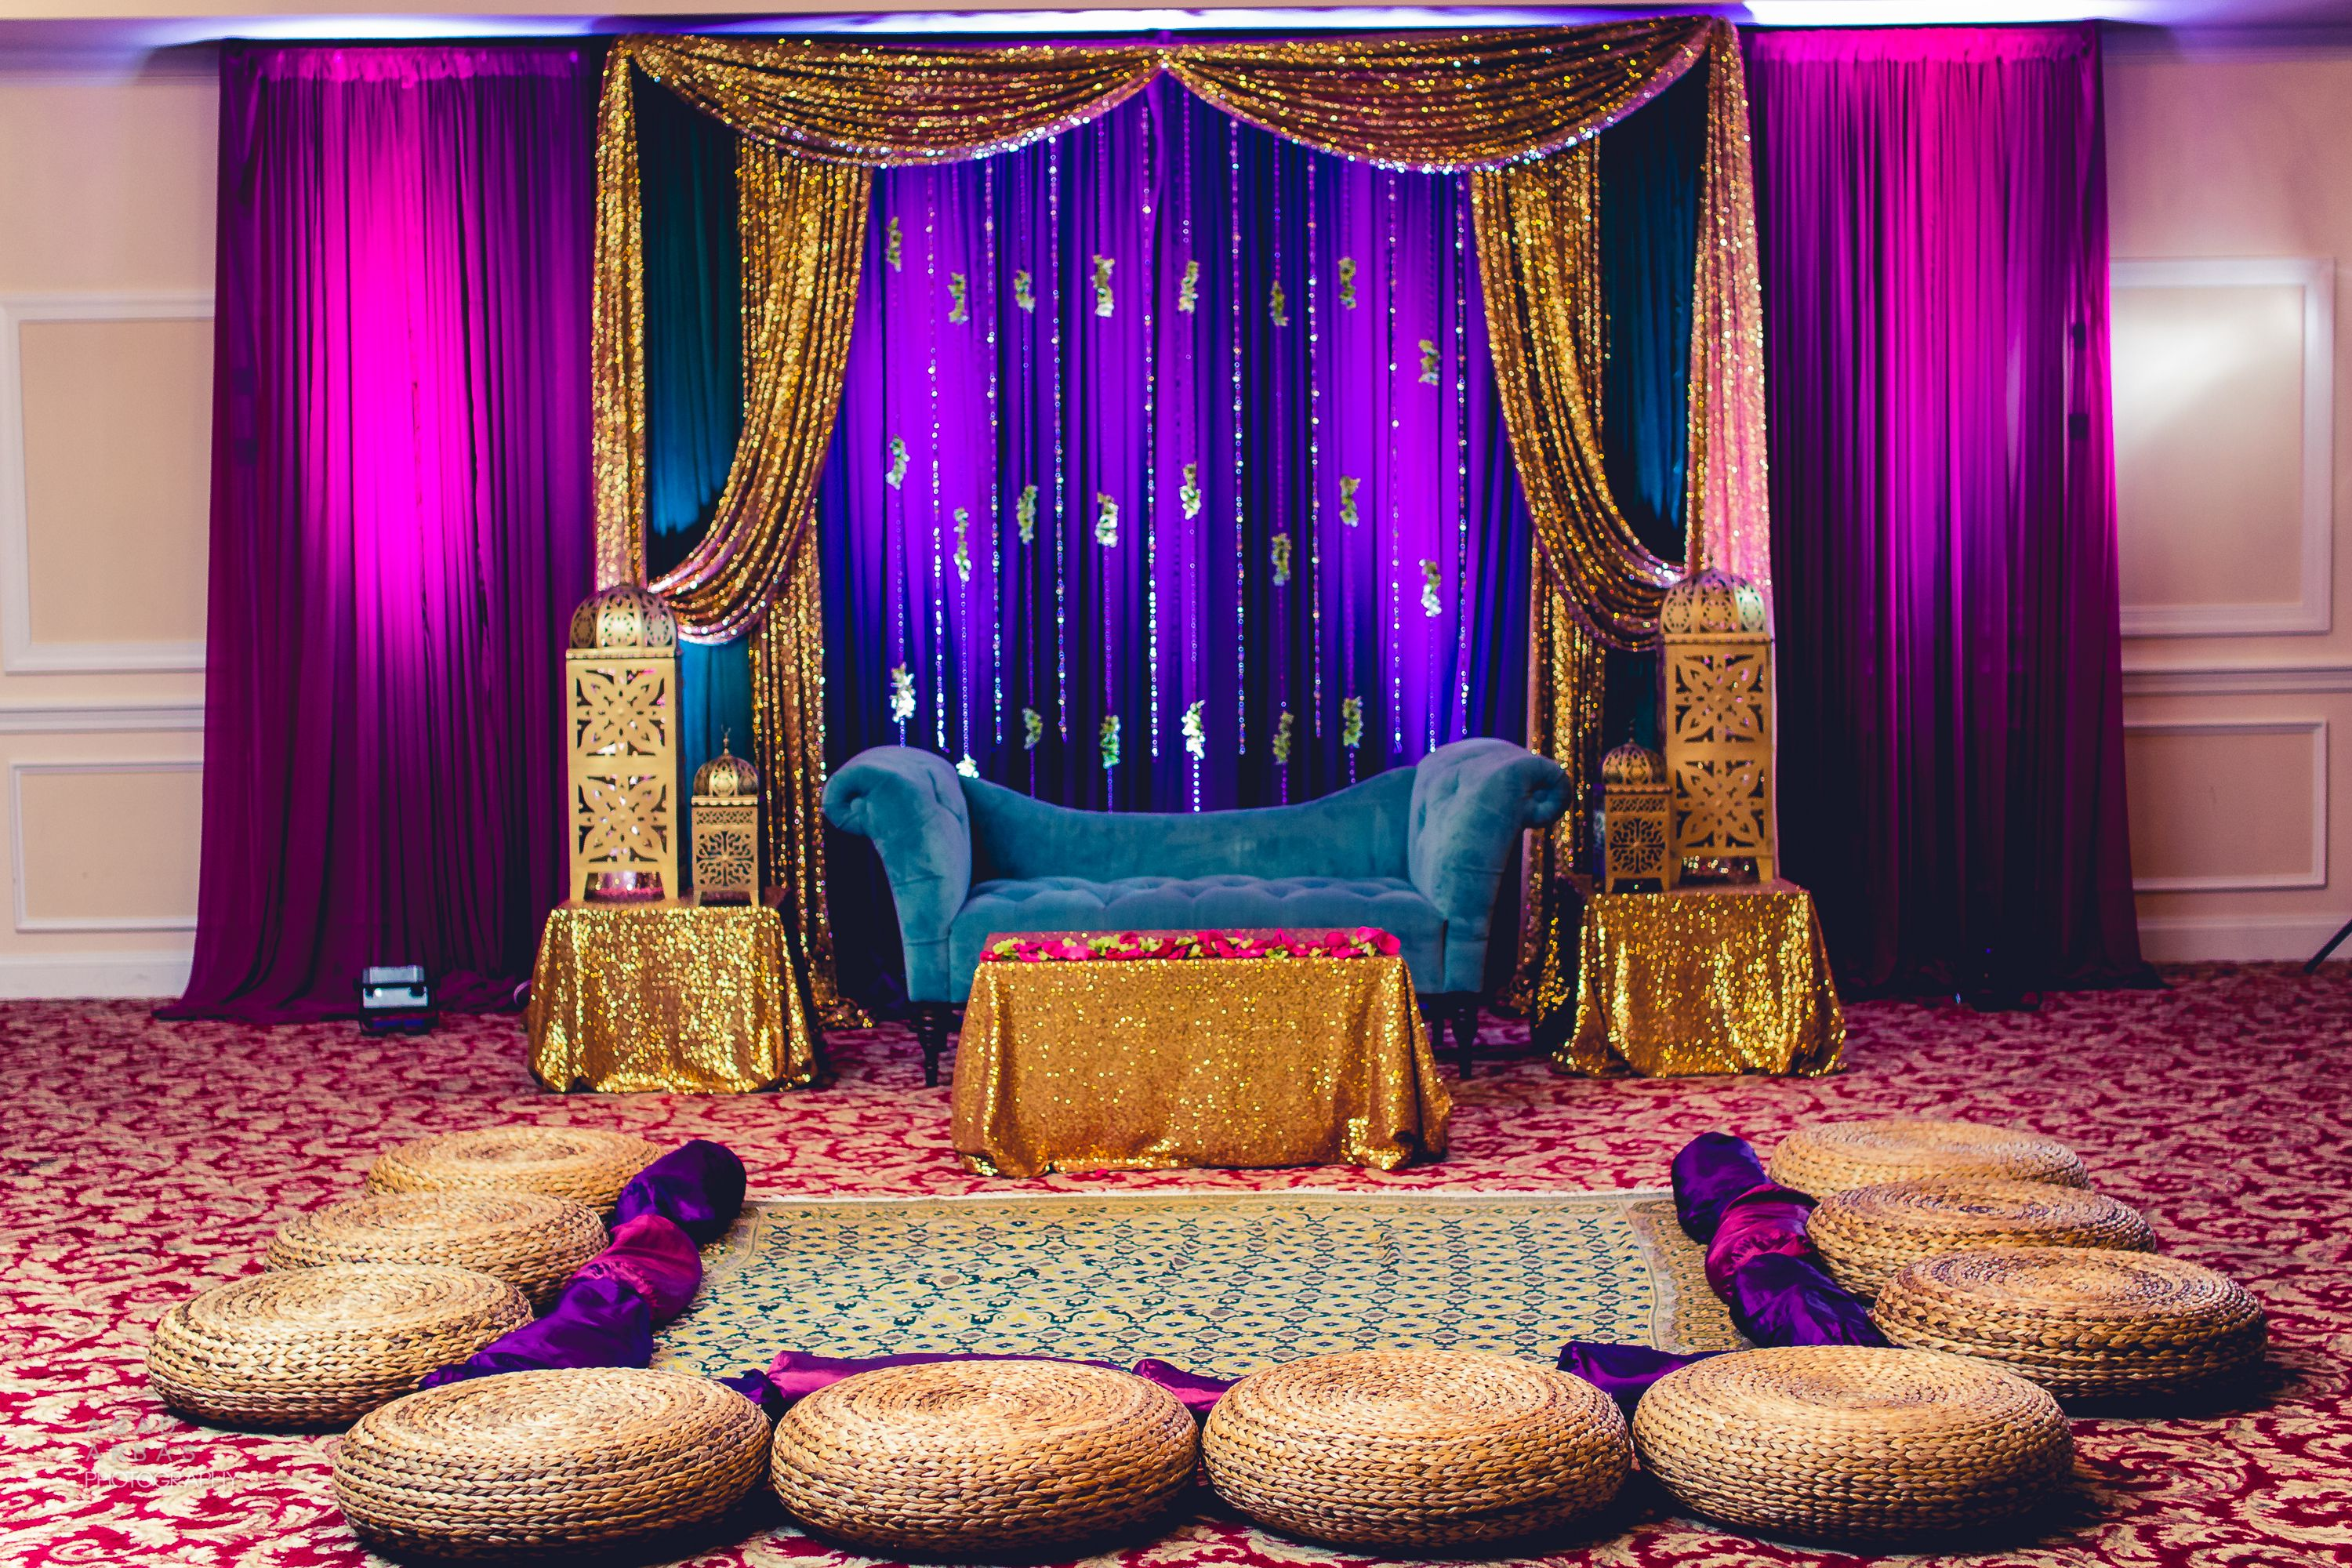 Mehndi Stage Decoration Ideas Pakistani : Bold gem tones for the mehndi sangeet dholki stage